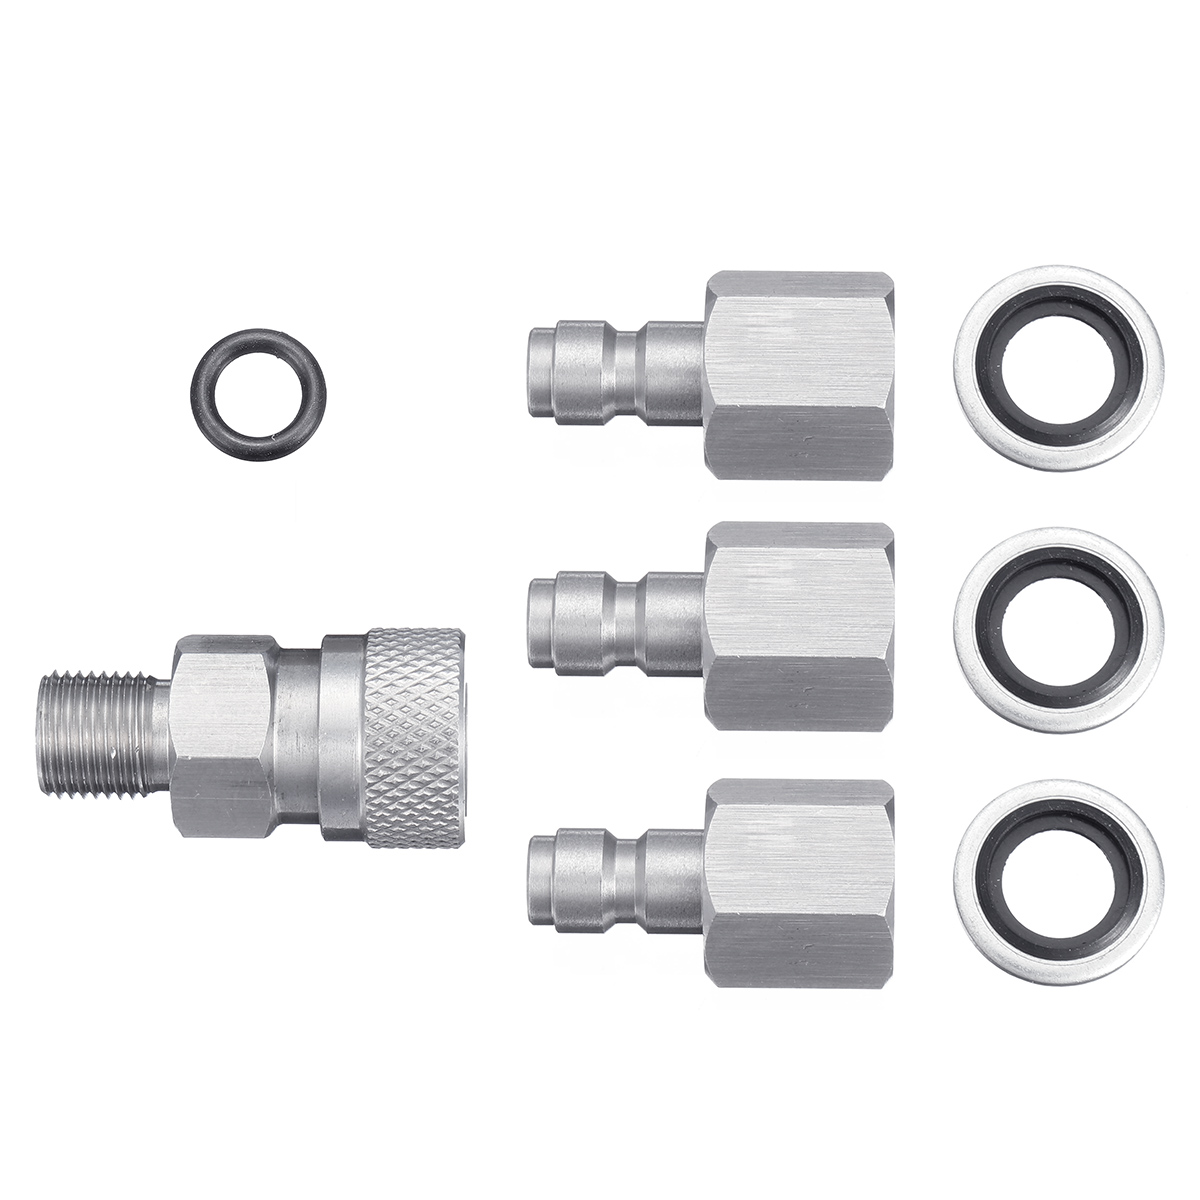 Stainless 1/8 BSPP Quick Release Hexagonal Coupler with 3 plugs for PCP Air Filling